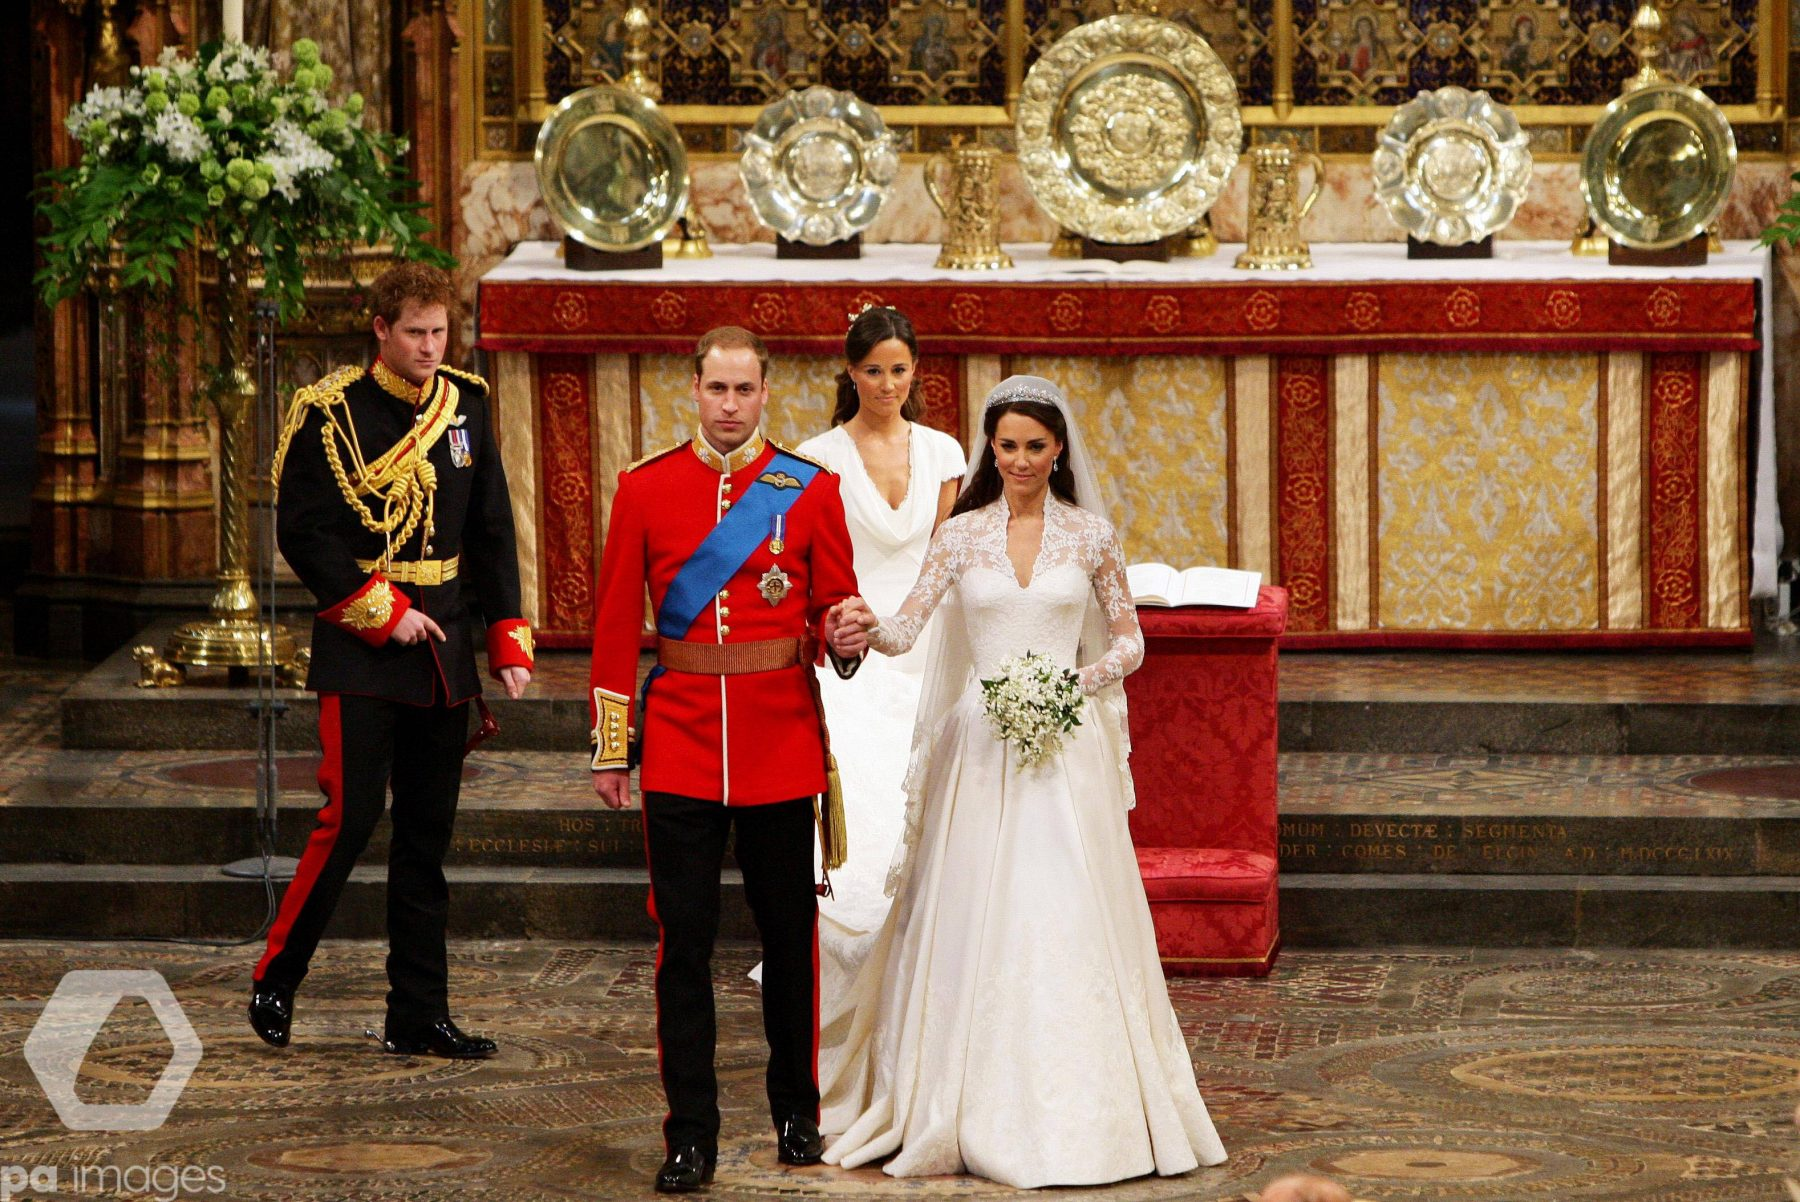 Prince William and Catherine Middleton Royal Wedding Photographs from Westminster Abbey